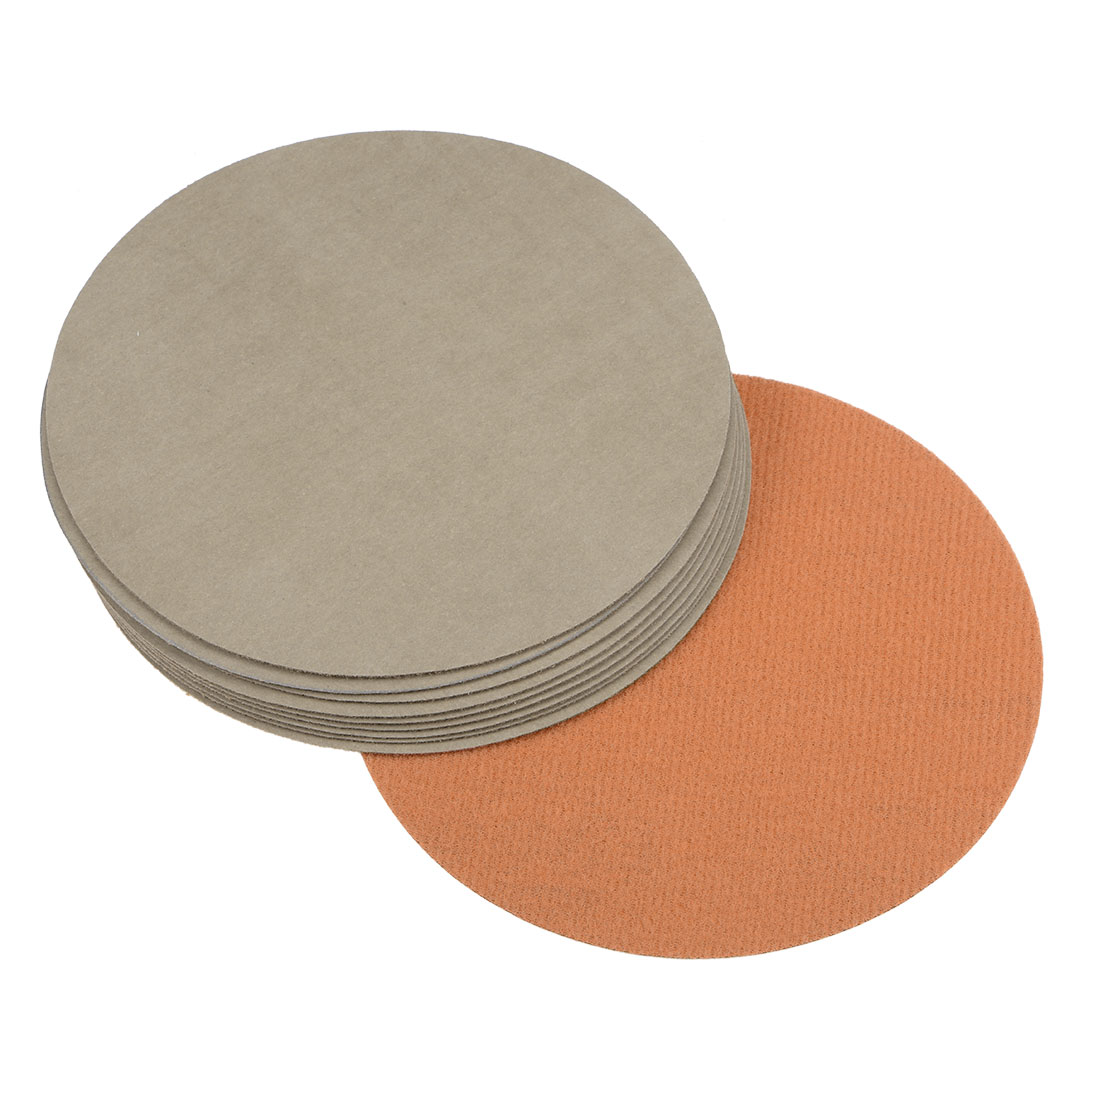 5 inch Wet Dry Discs 10000 Grit Hook and Loop Sanding Disc Silicon Carbide 10pcs